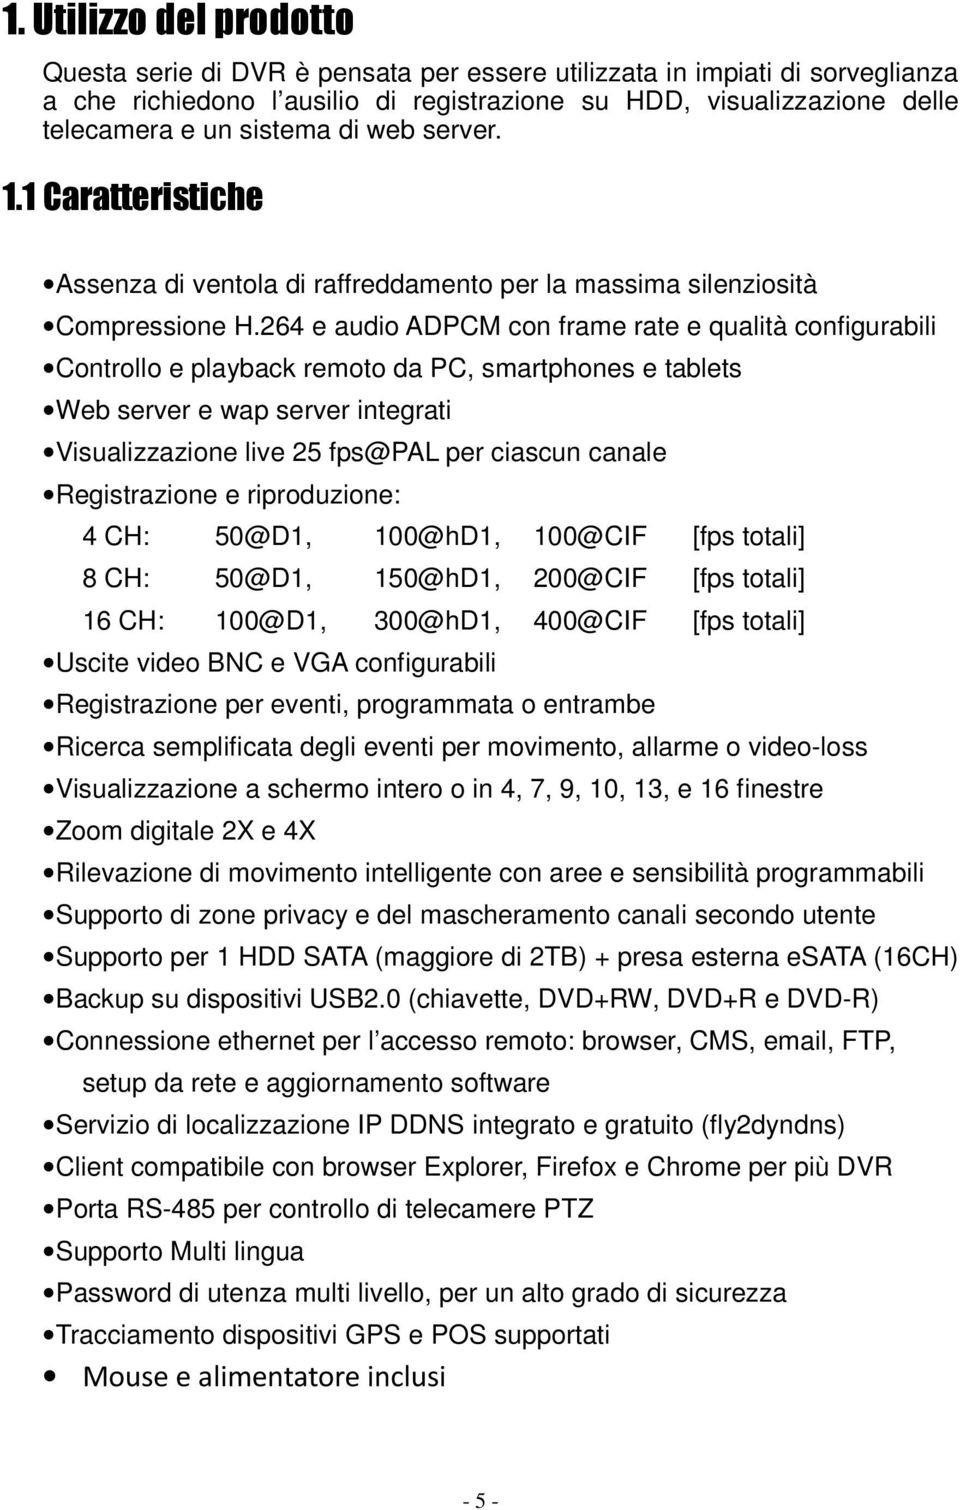 264 e audio ADPCM con frame rate e qualità configurabili Controllo e playback remoto da PC, smartphones e tablets Web server e wap server integrati Visualizzazione live 25 fps@pal per ciascun canale